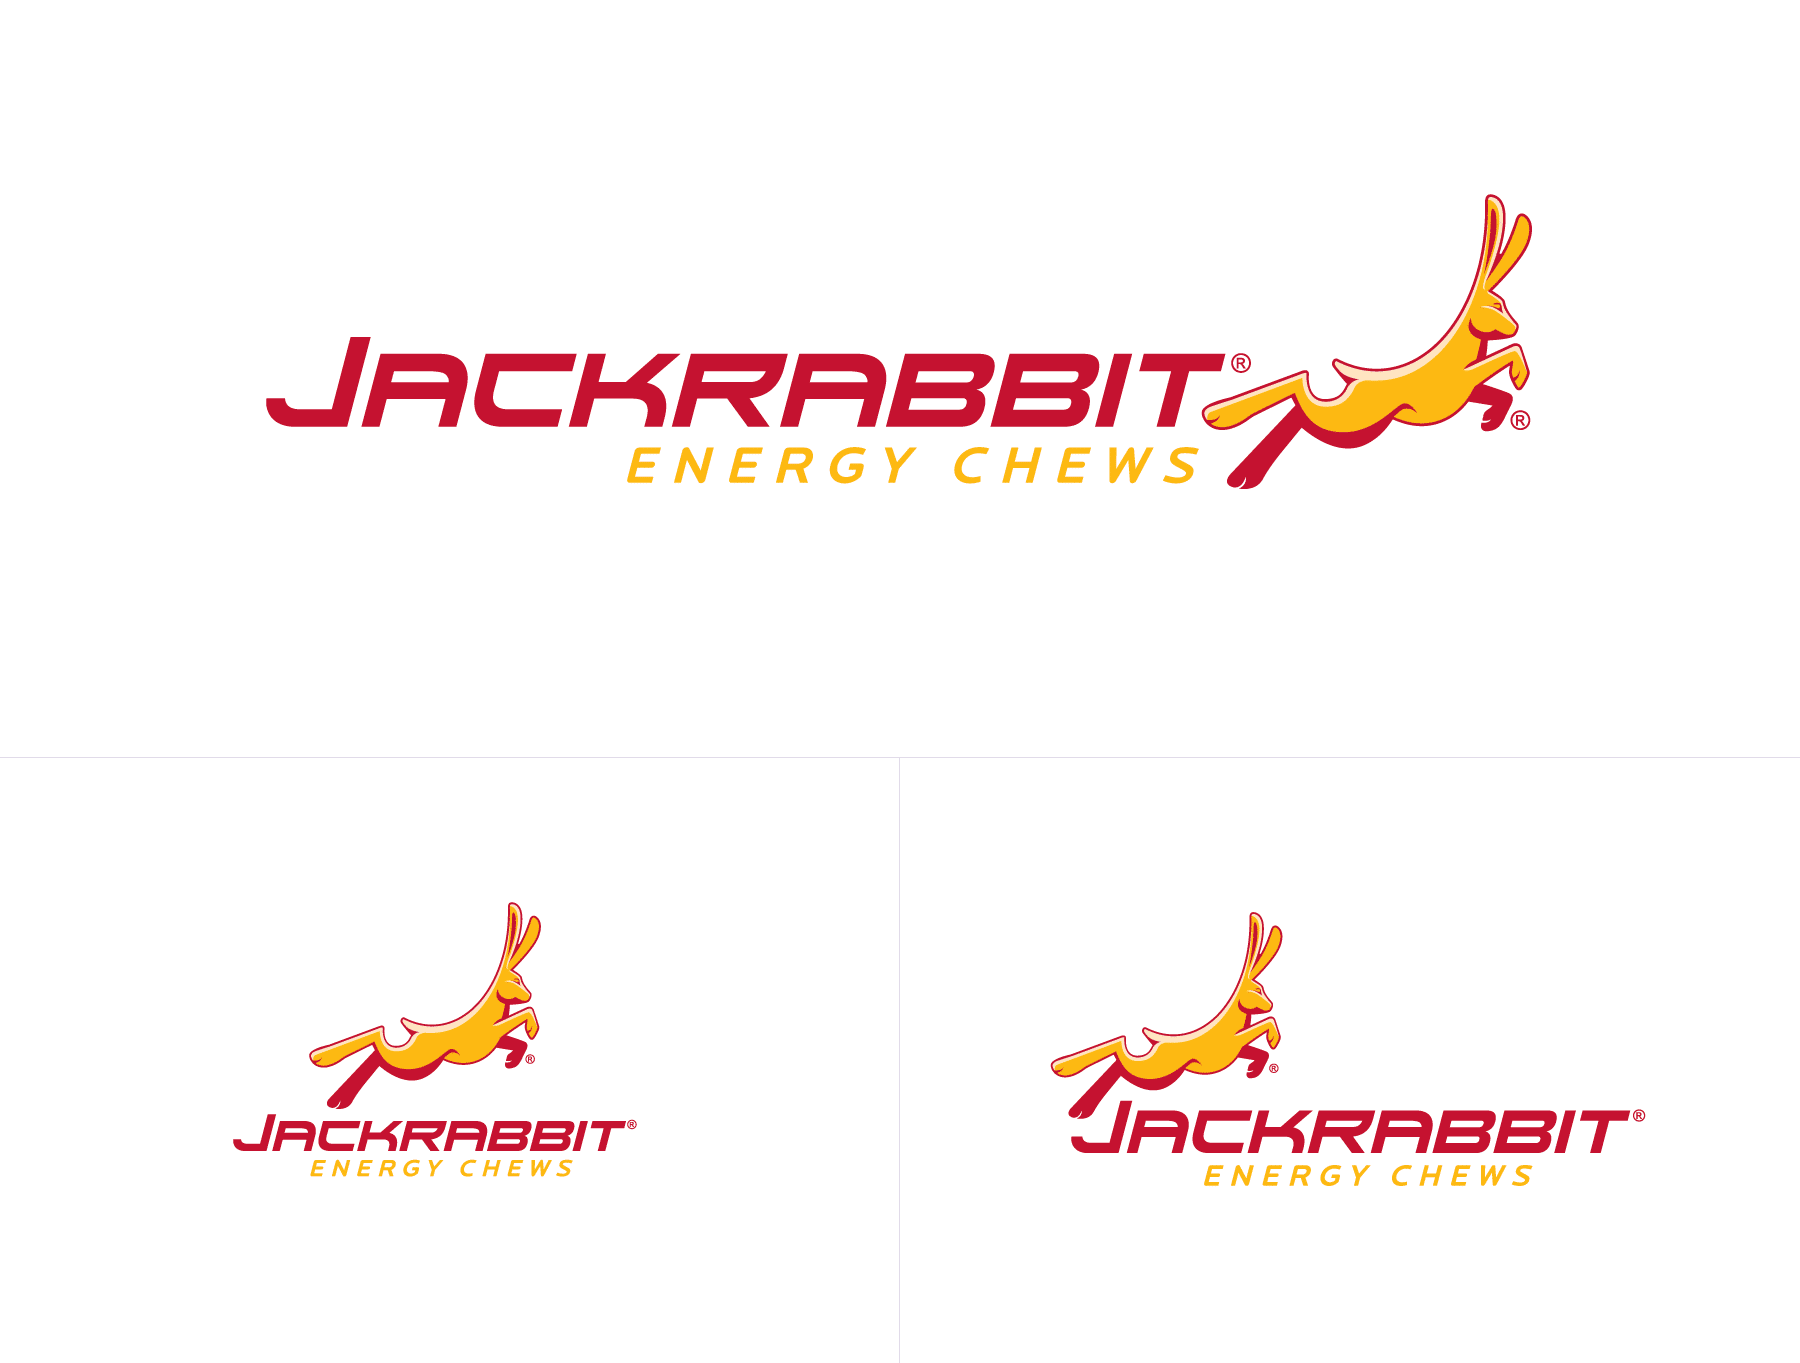 jackrabbit-logo-design